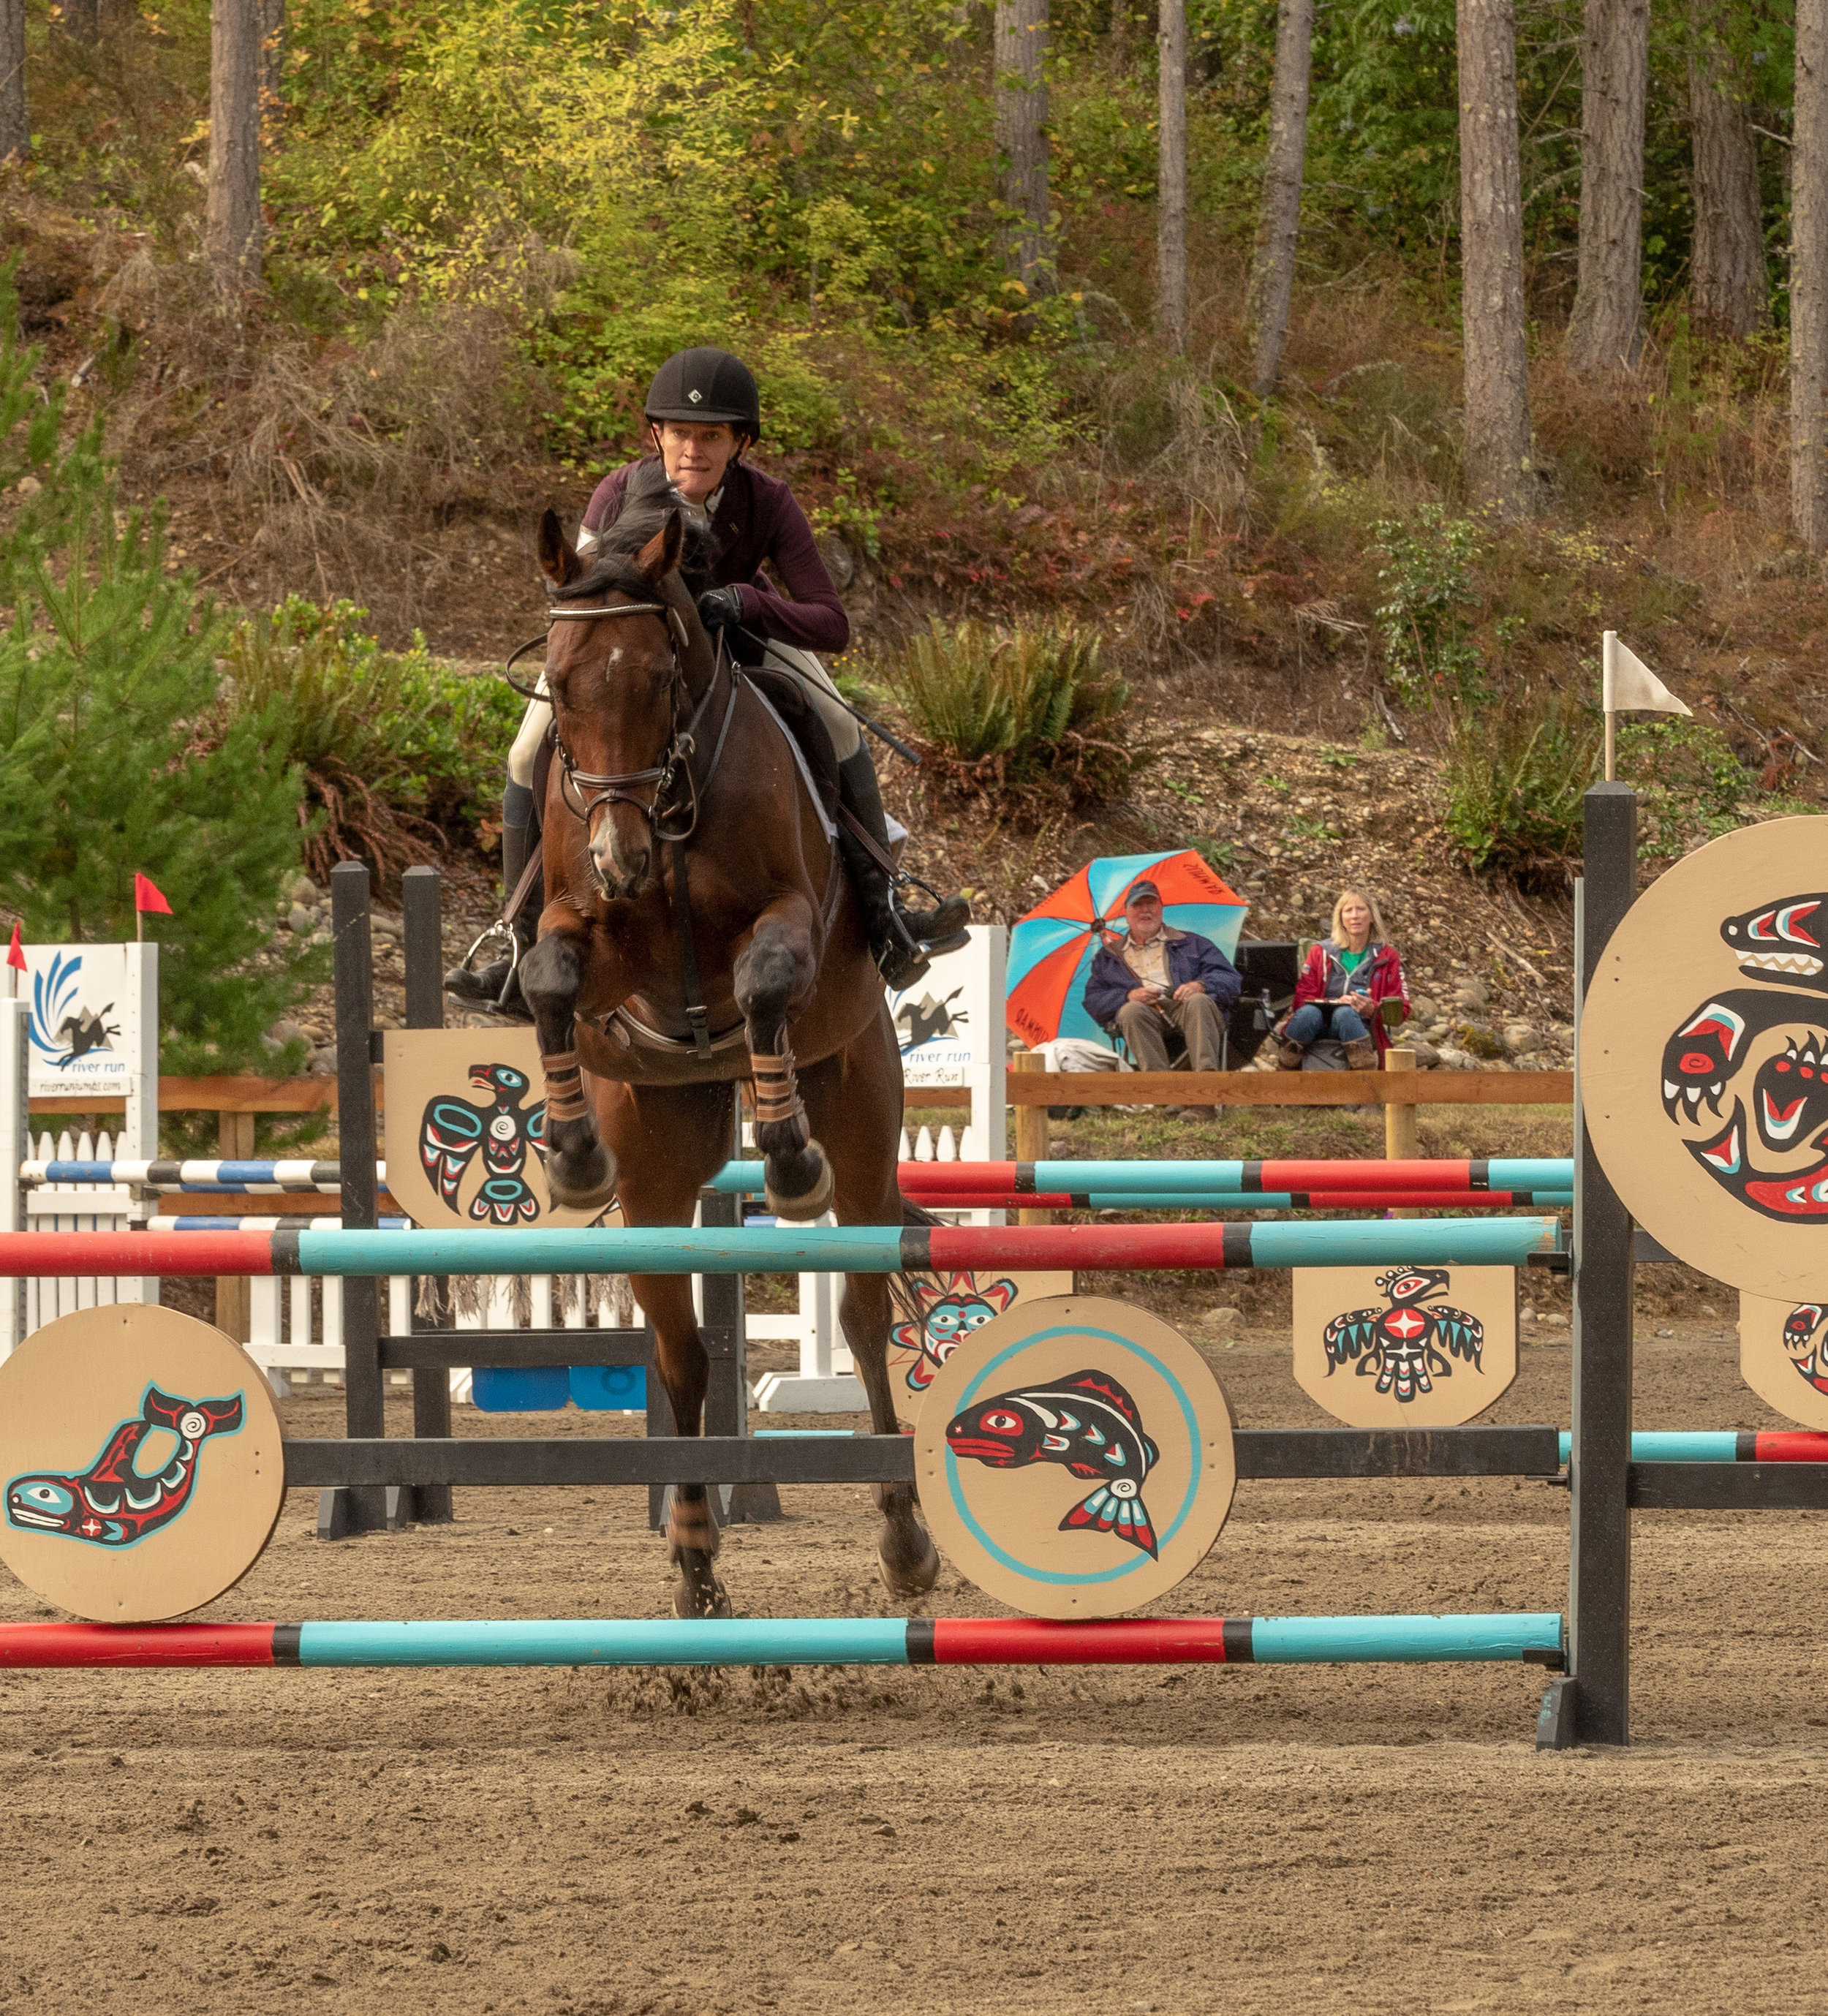 Show Jumping in the arena. A show jumping course comprises a series of colored fences usually made up of lightweight rails that are easily knocked down.